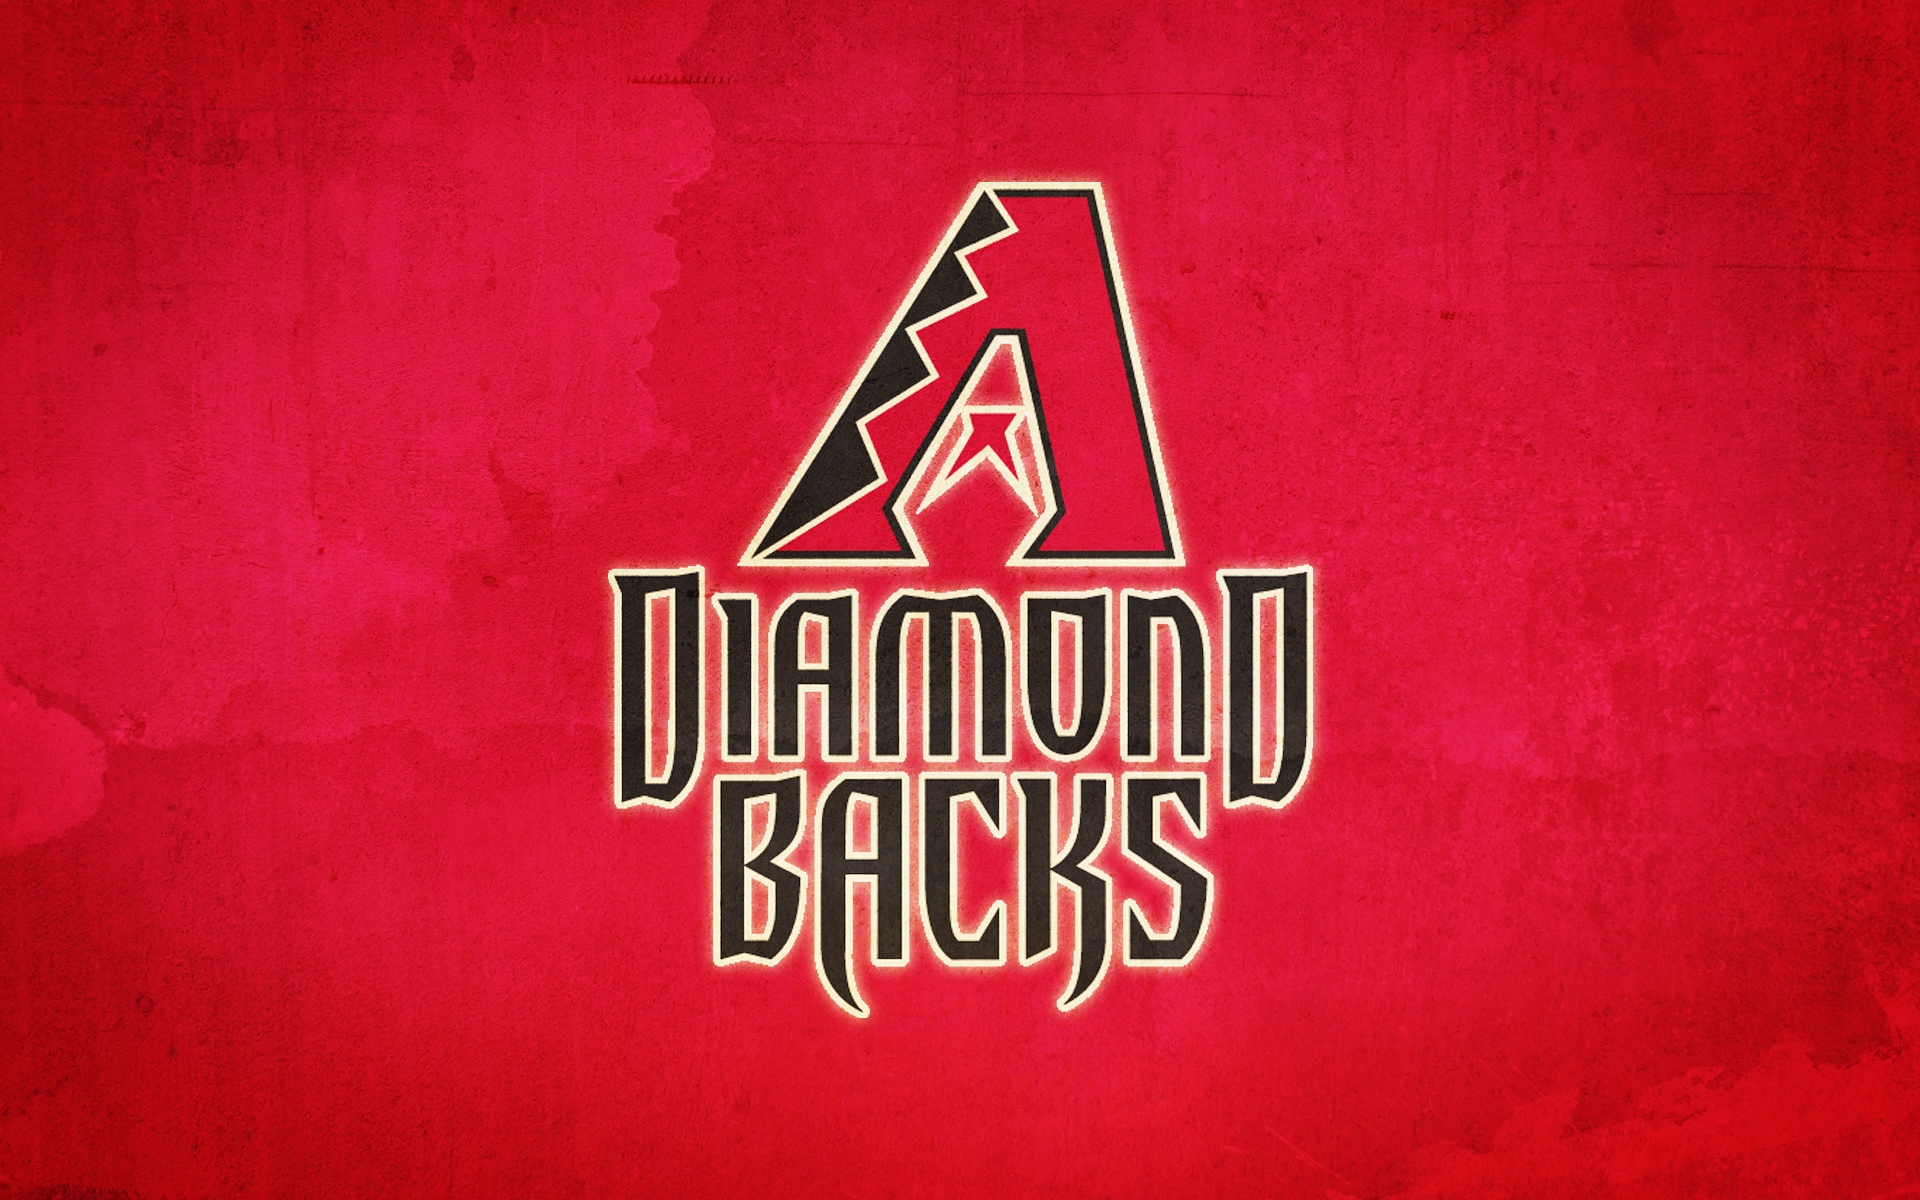 1920x1200 - Arizona Diamondbacks Wallpapers 2